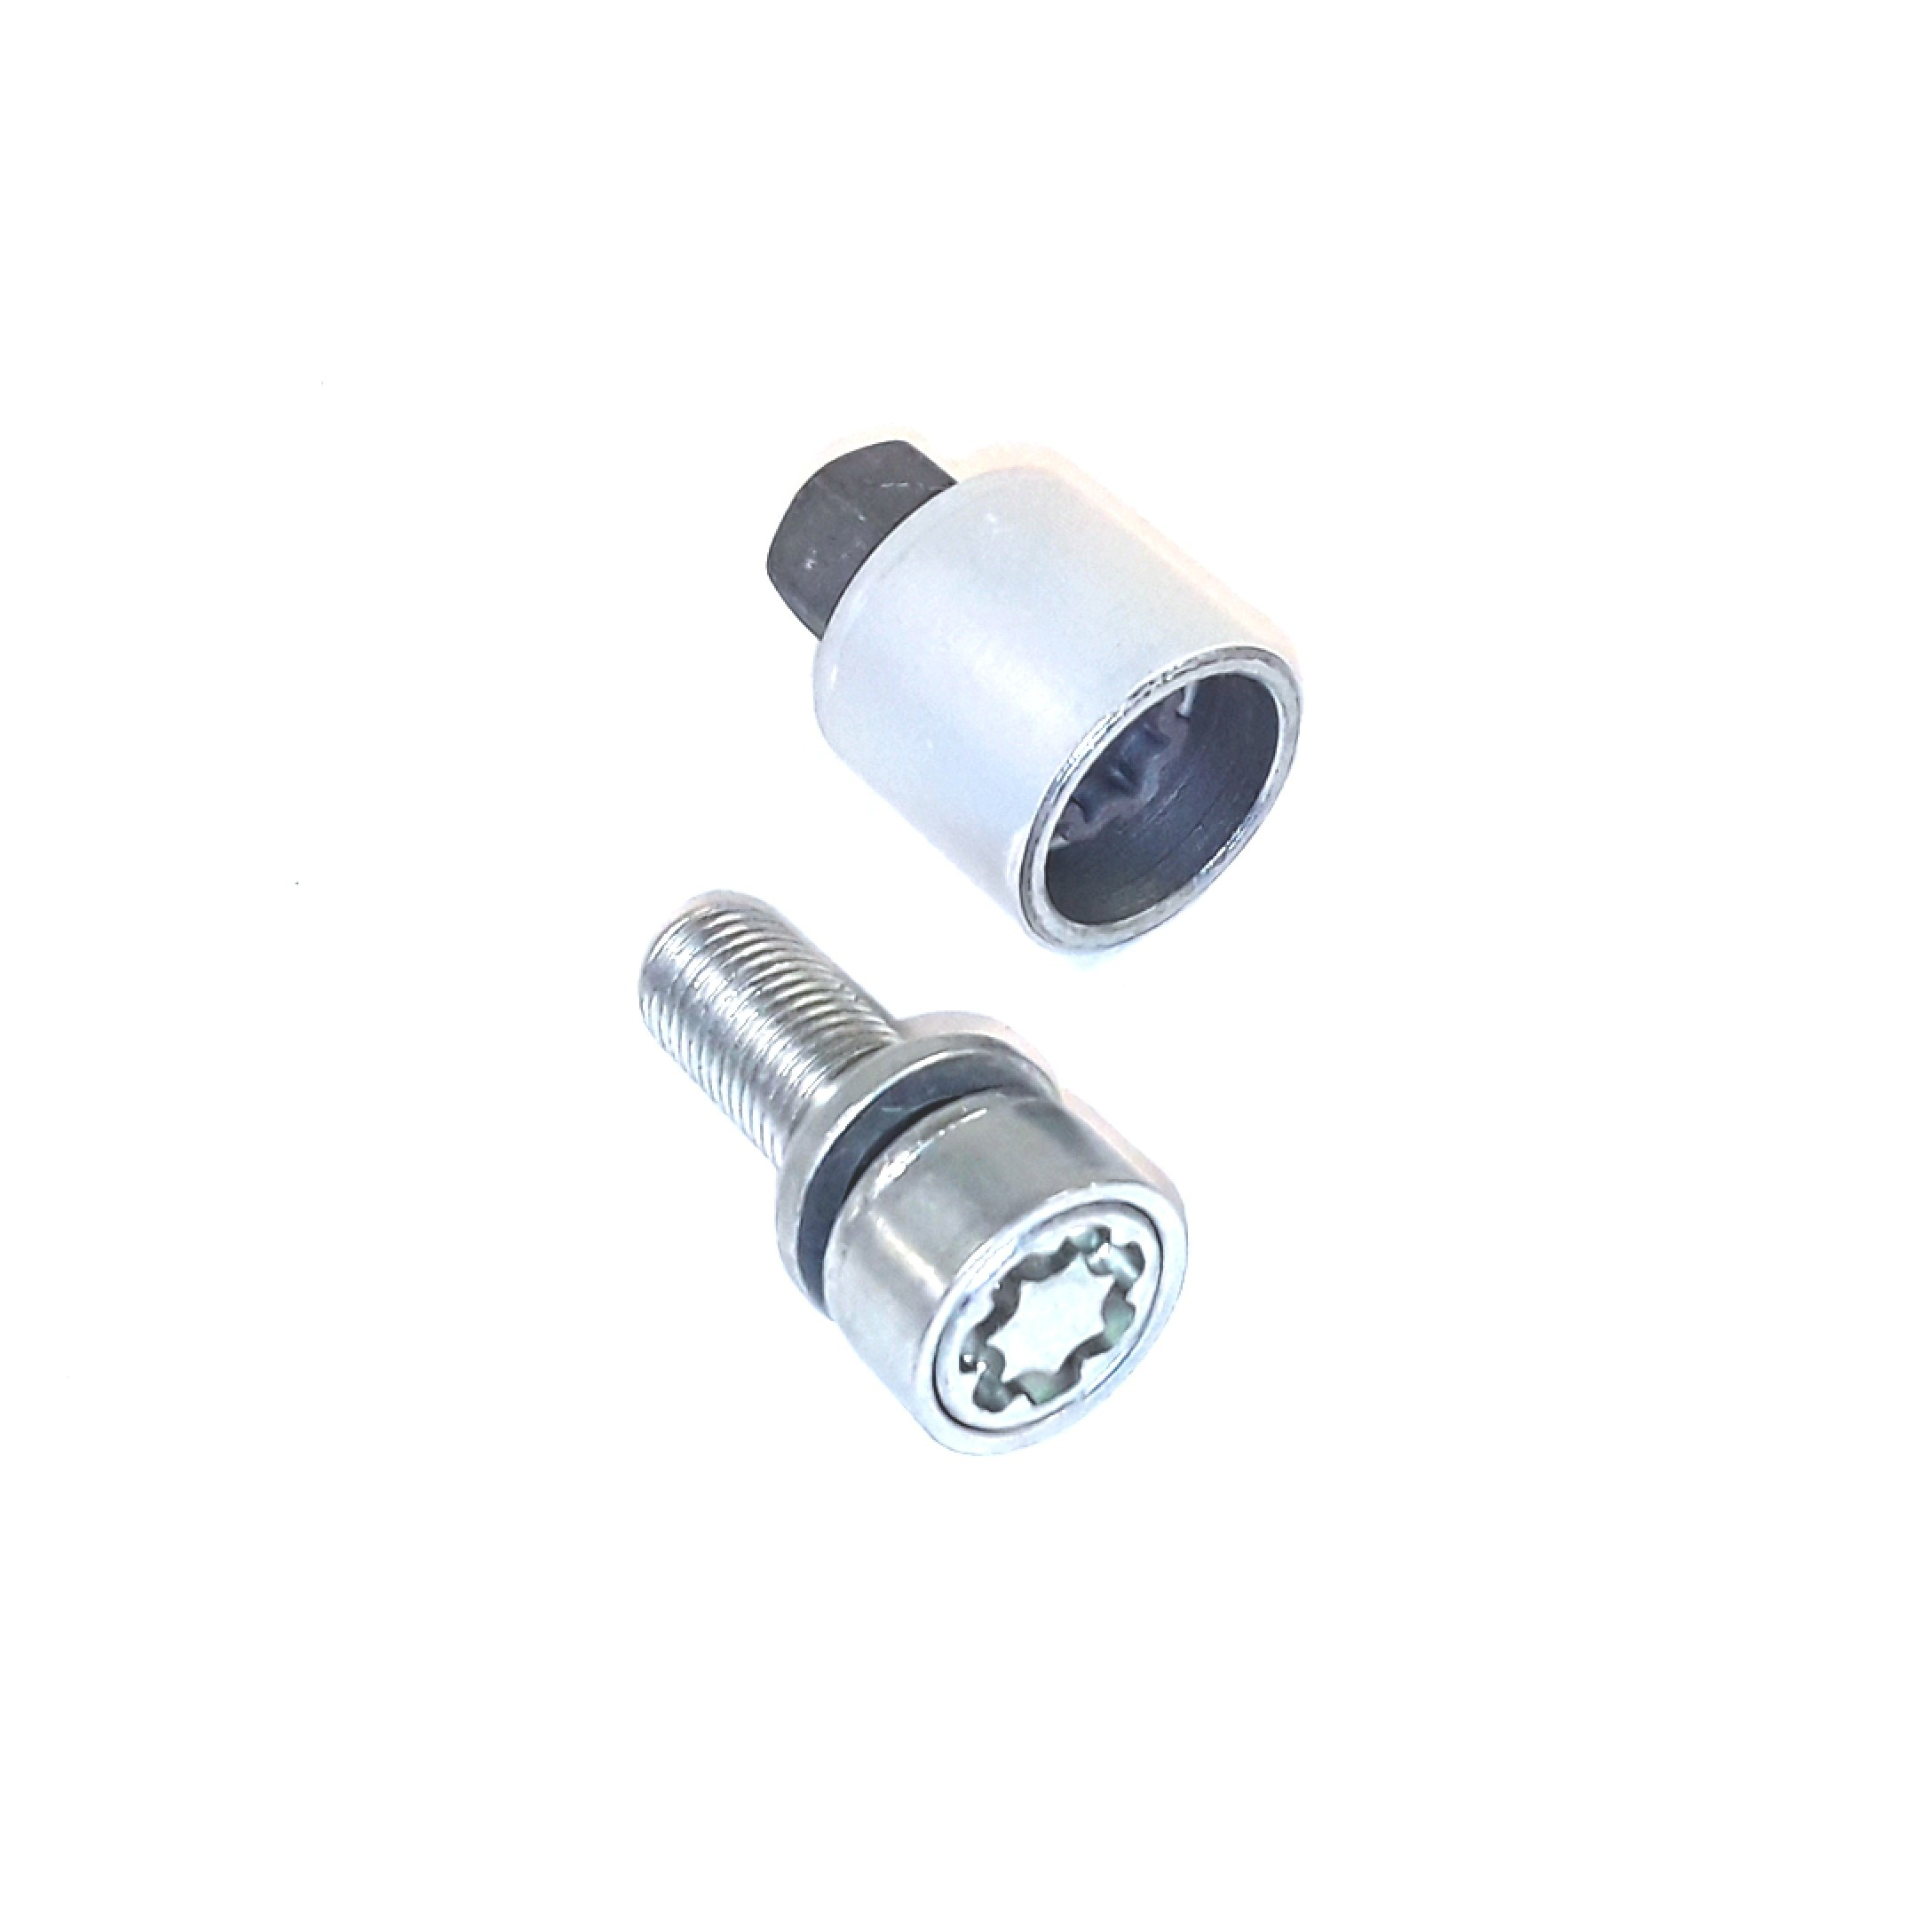 Audi R8 Wheel Bolt. 19, Locking, Key Code Q. Locking, Code